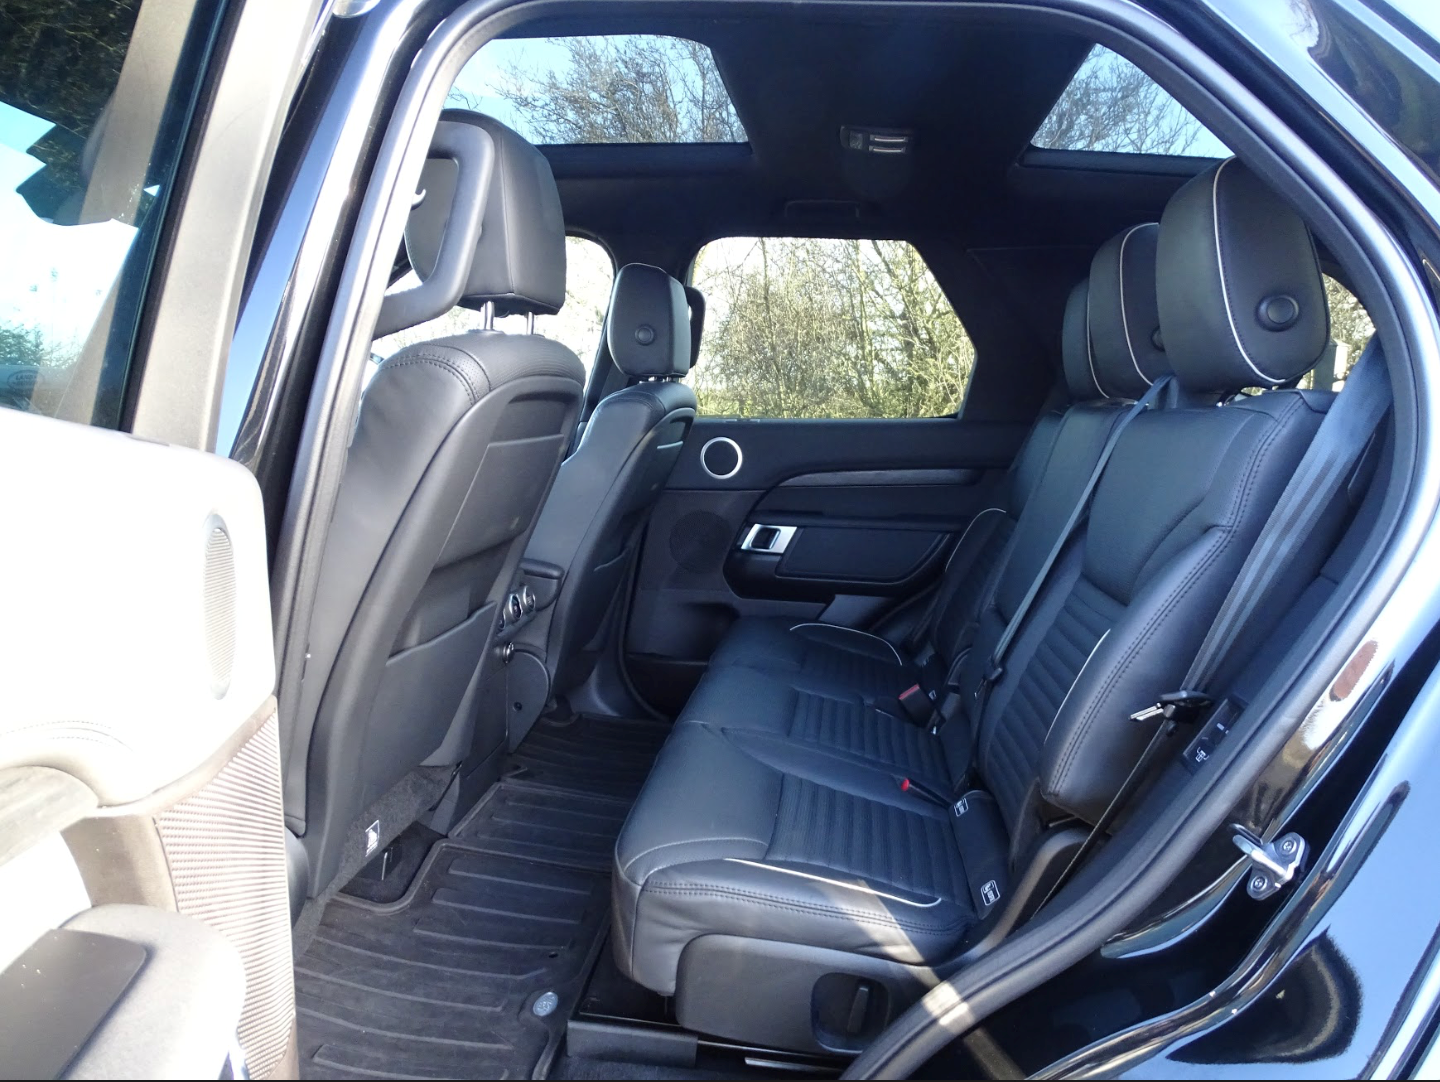 2017 Land Rover  DISCOVERY  3.0 SDV6 HSE 7 SEATER AUTO  41,948 For Sale (picture 10 of 13)